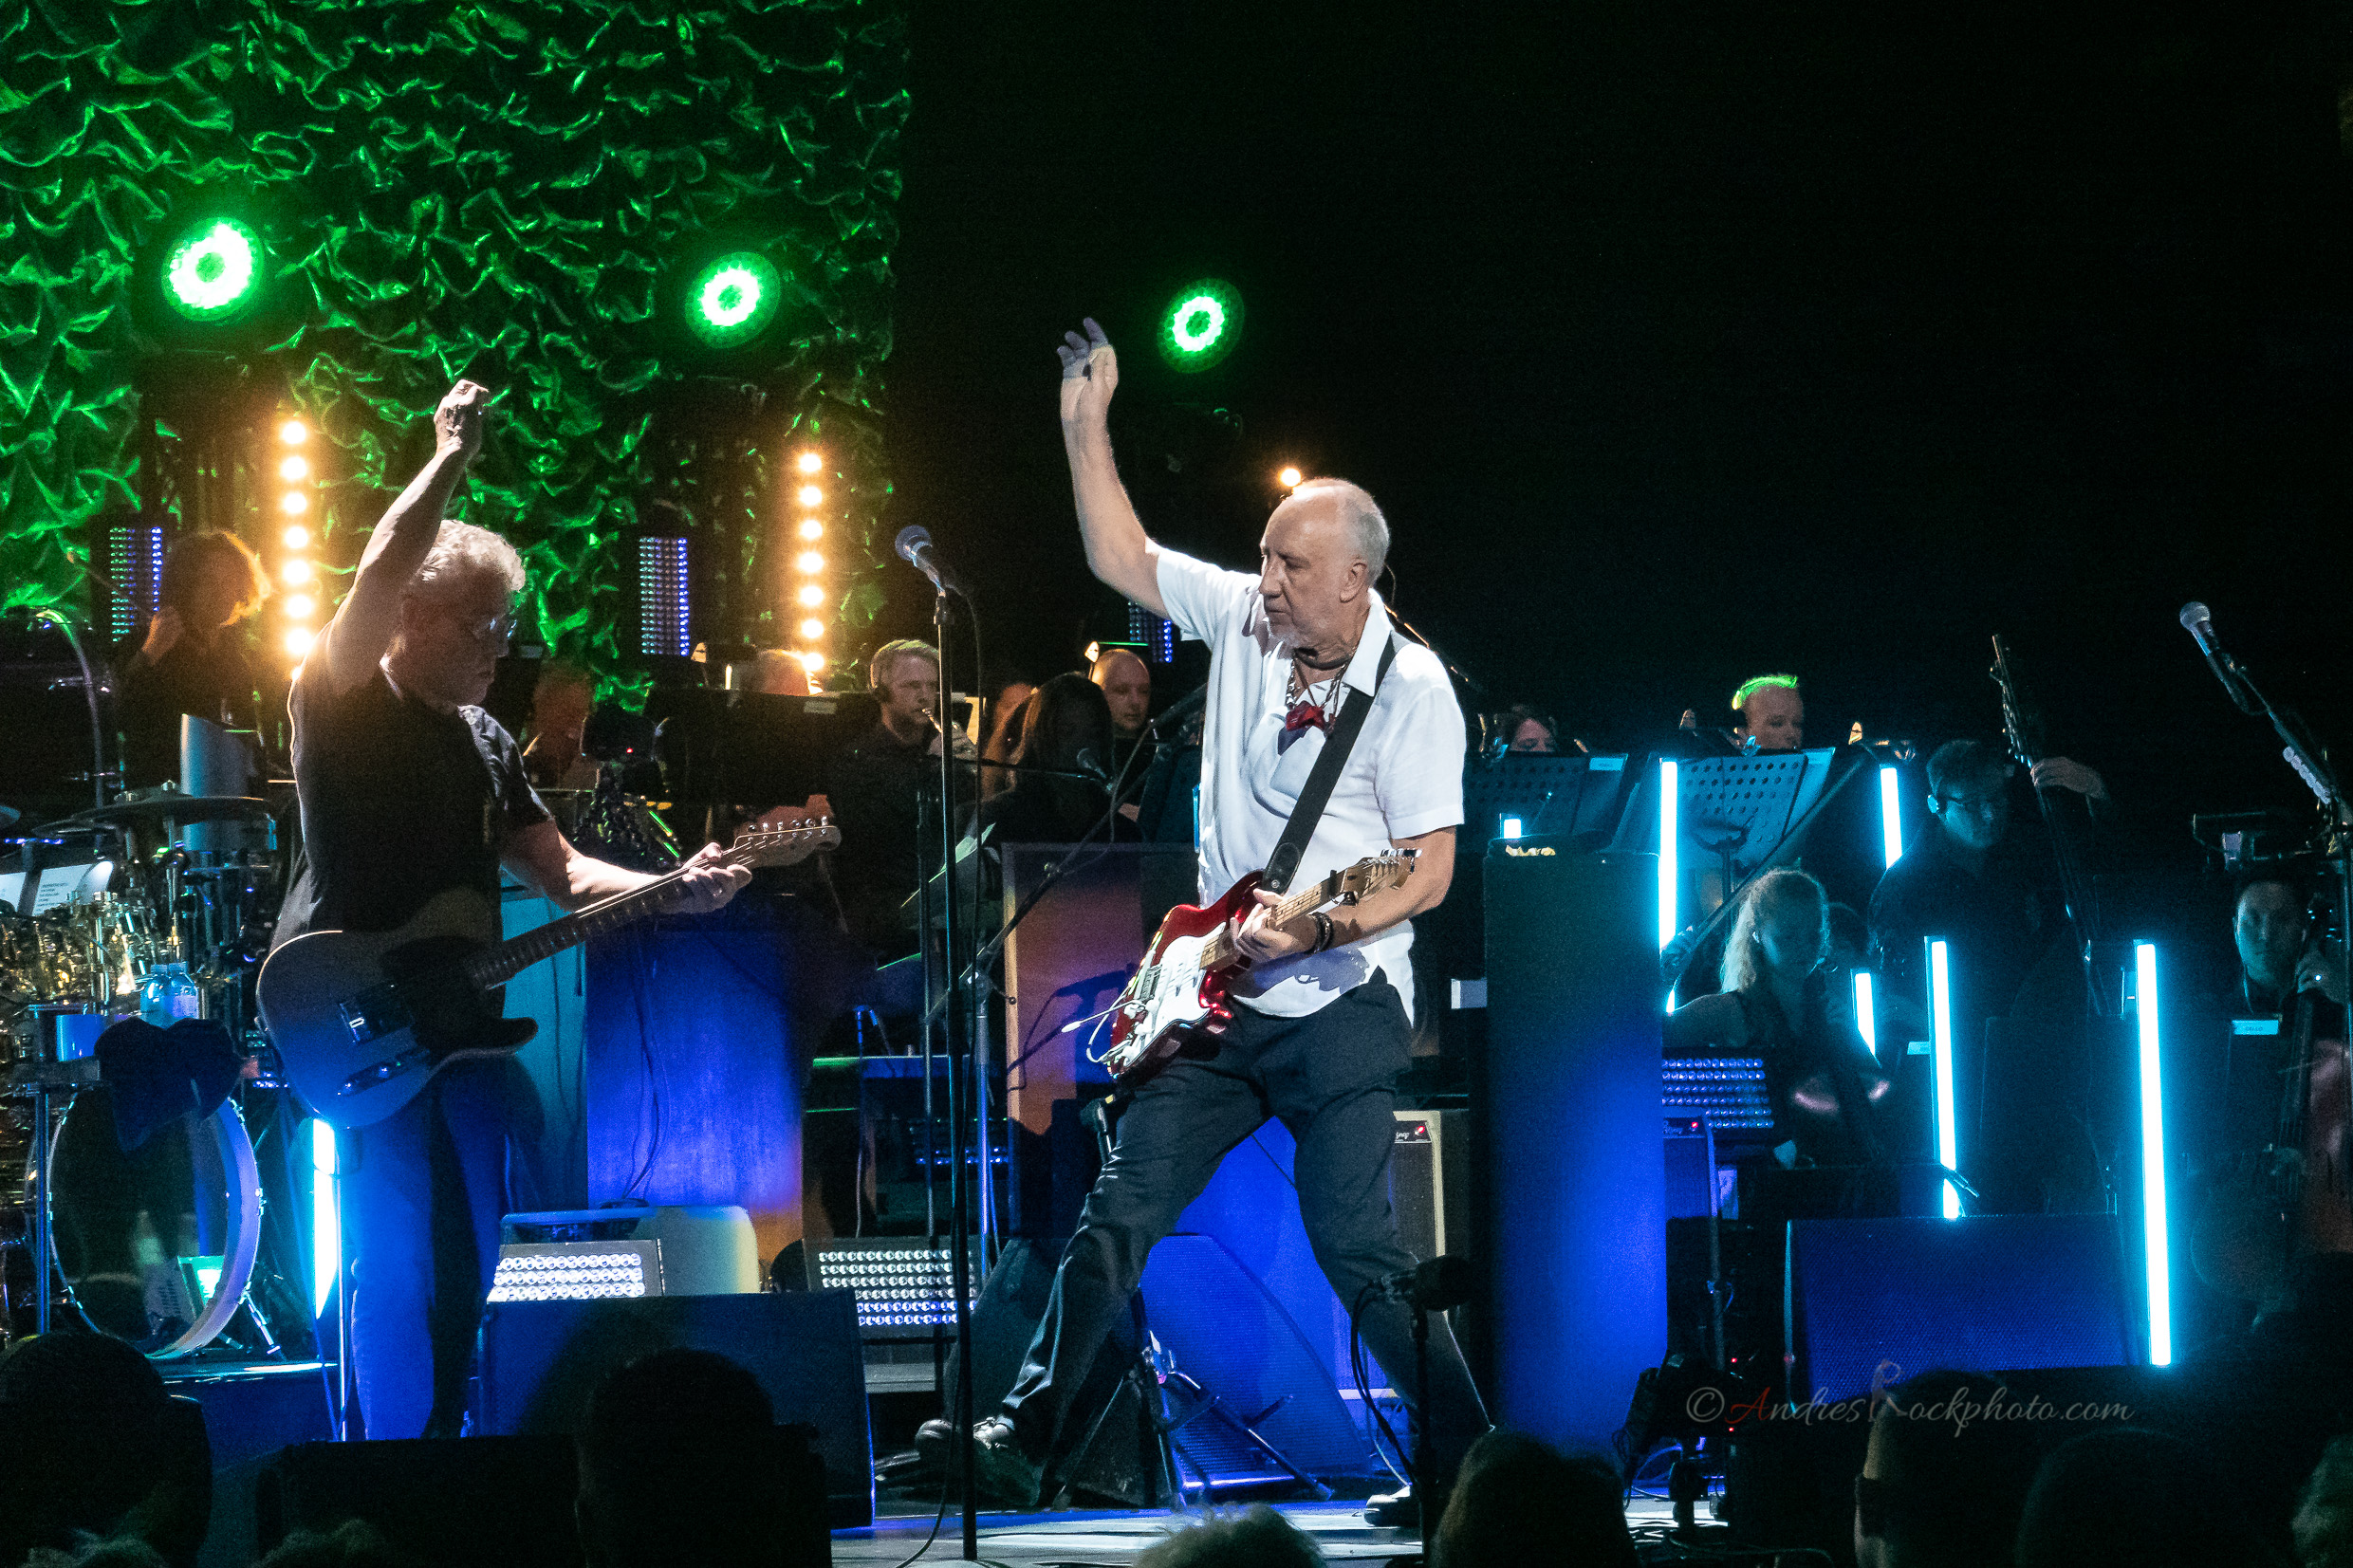 Roger Daltrey and Pete Townshend with orchestra